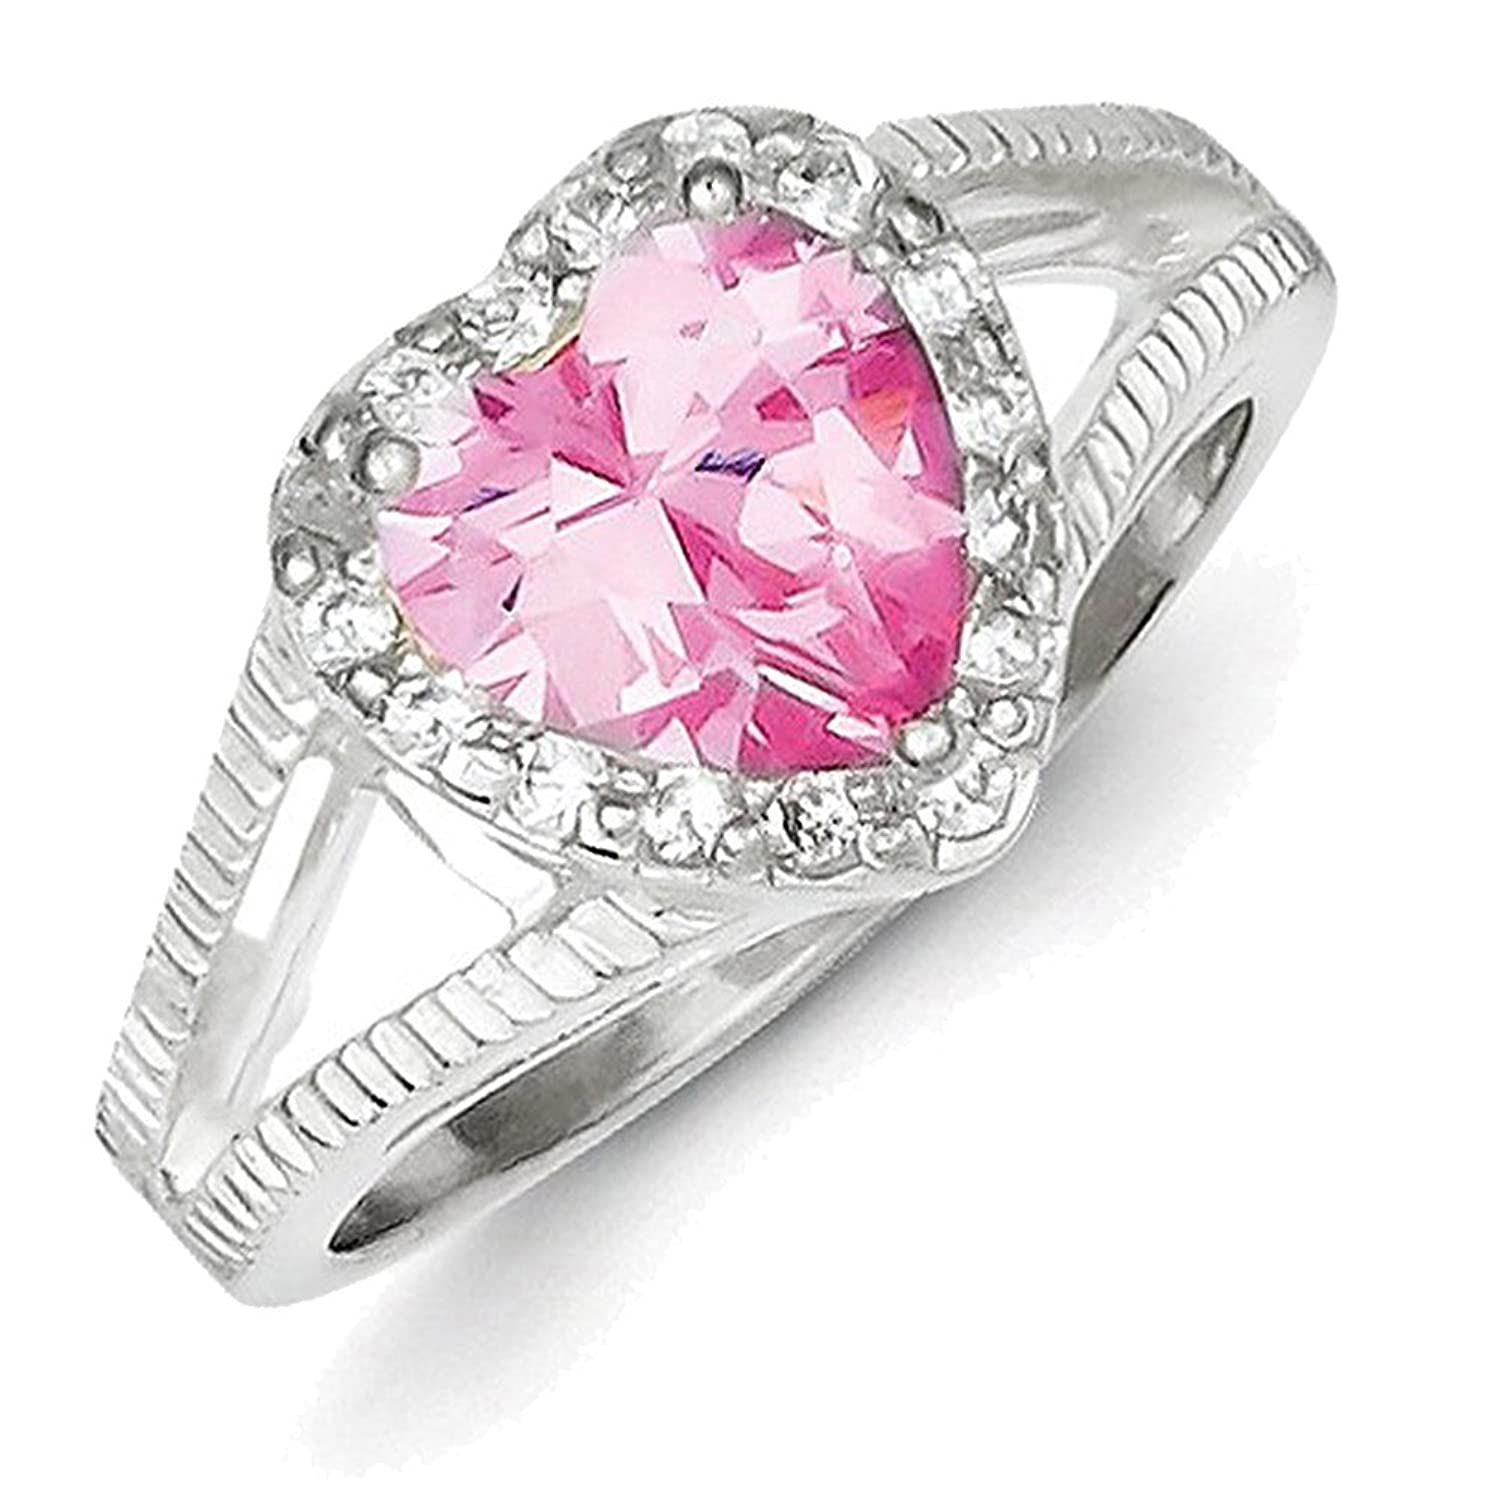 Sterling Silver Pink CZ Heart Ring QR4389: Amazon.co.uk: Jewellery